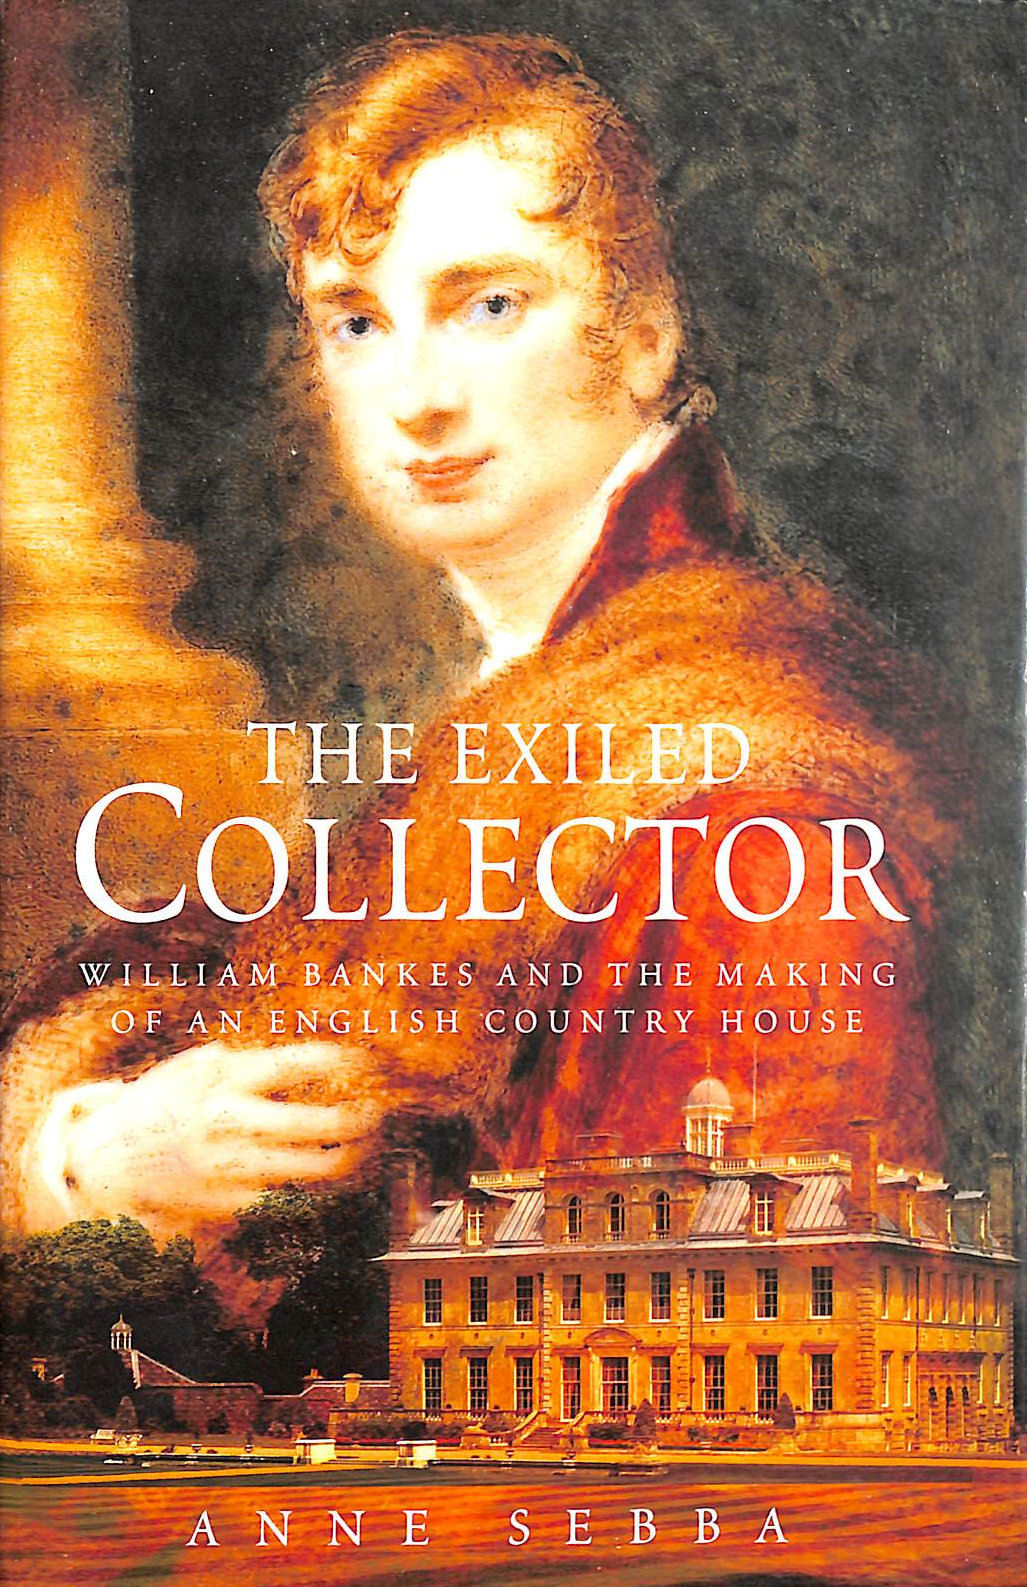 Image for The Exiled Collector: William Bankes and the Making of an English Country House